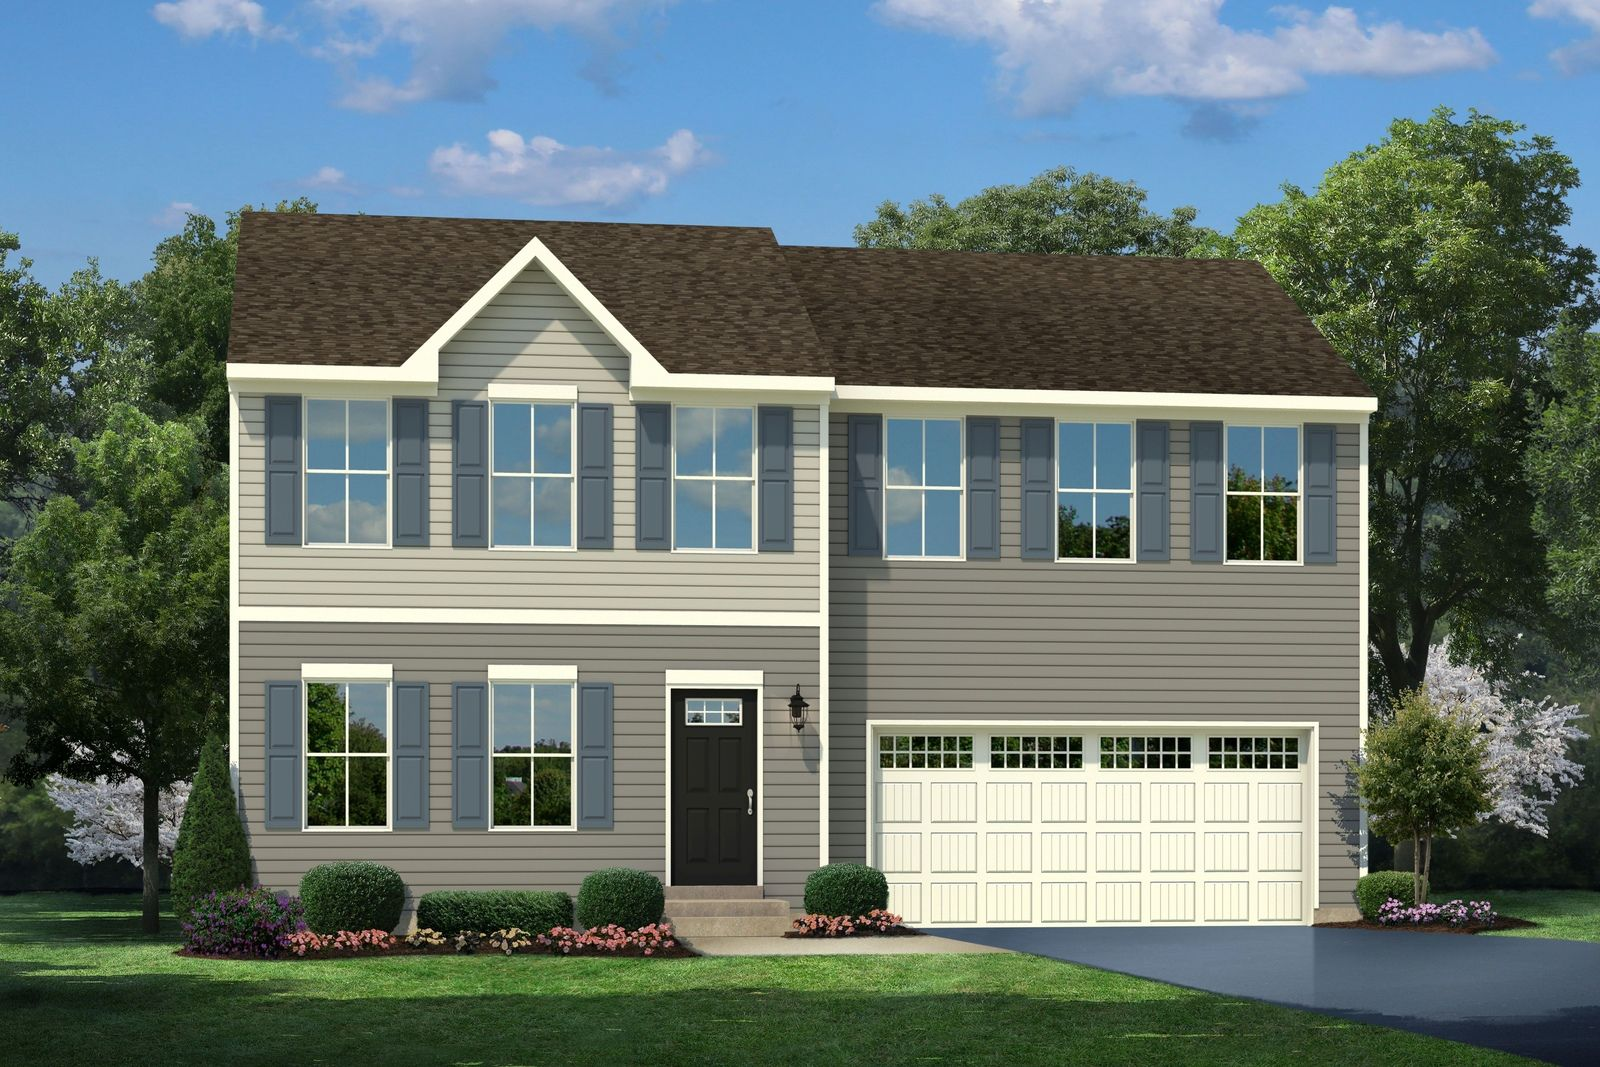 14227 New Construction Homes & Plans | 74 Homes | NewHomeSource